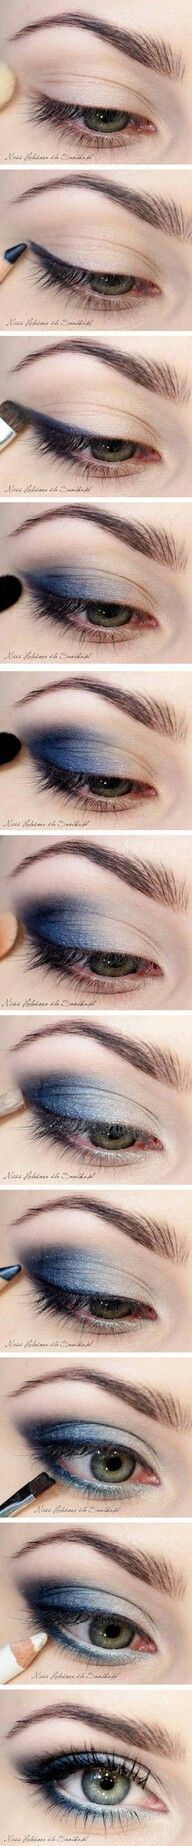 How to: dramatic blue eye makeup